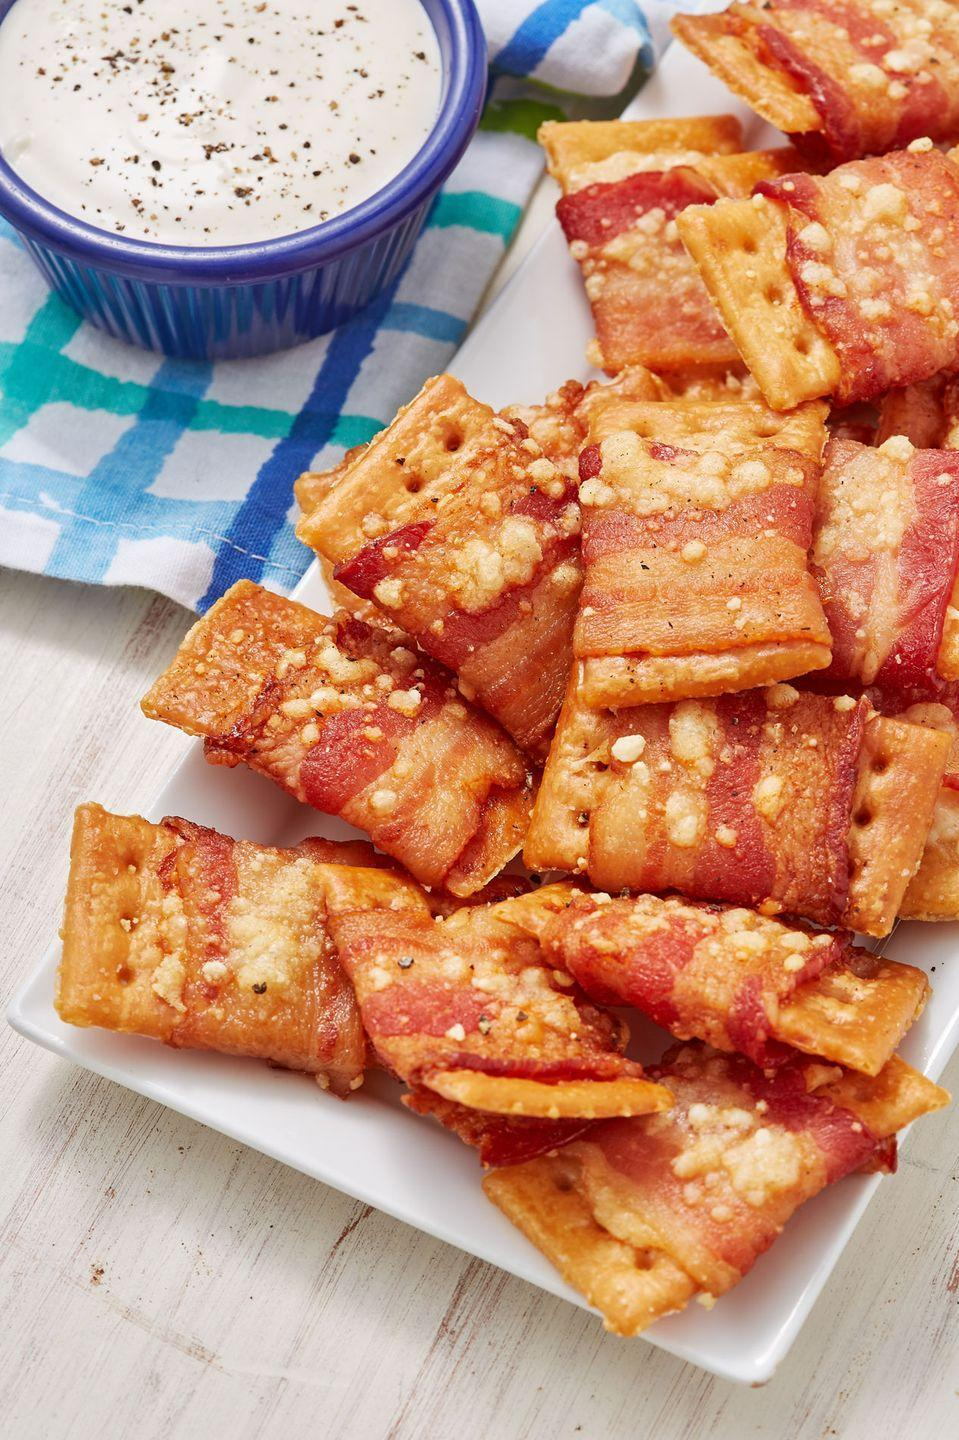 """<p>Three simple ingredients make this insanely addictive snack.</p><p>Get the recipe from <a href=""""https://www.delish.com/cooking/recipe-ideas/recipes/a52549/bacon-crack-bites-recipe/"""" rel=""""nofollow noopener"""" target=""""_blank"""" data-ylk=""""slk:Delish"""" class=""""link rapid-noclick-resp"""">Delish</a>.</p>"""